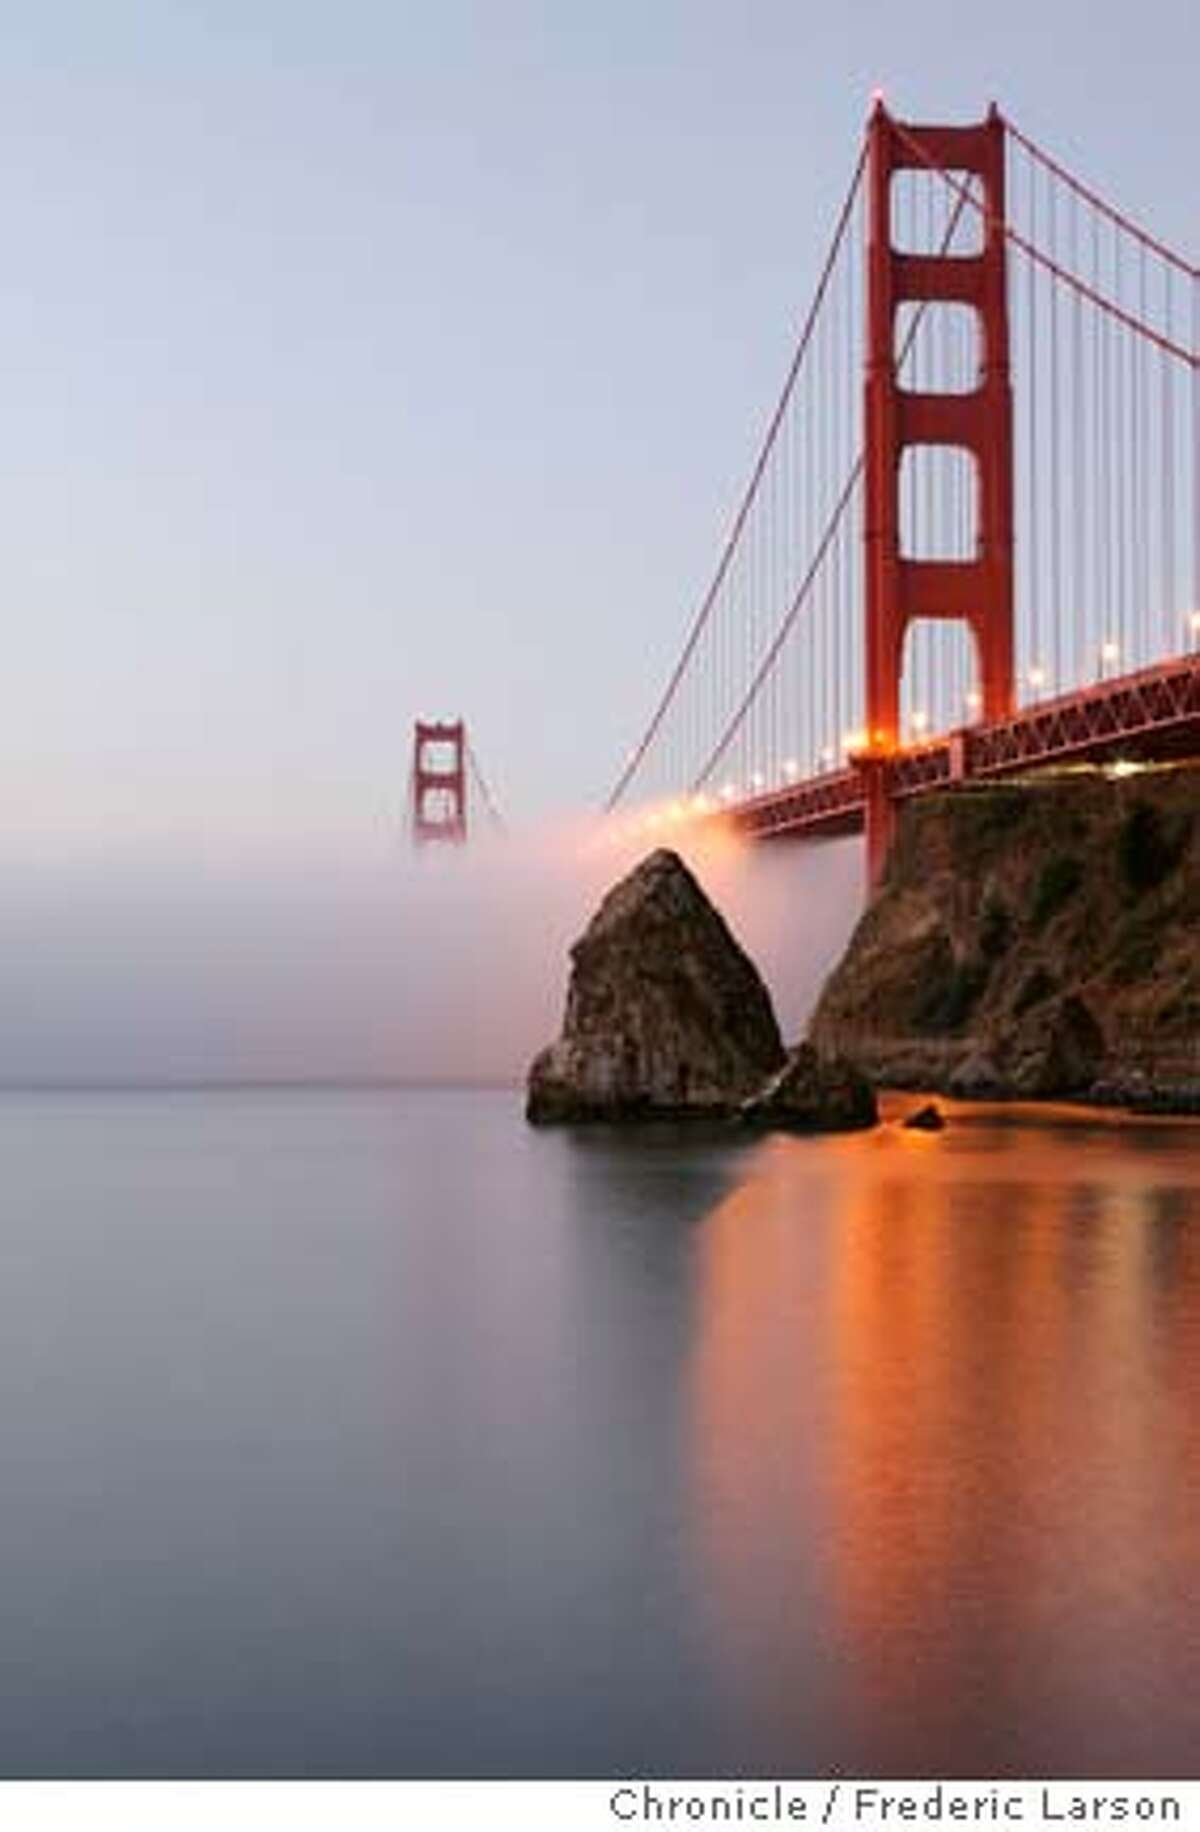 The September low hugging fog slowly makes its way under the Golden Gate Bridge seen at Fort Baker during sunrise. 9/12/06 {Frederic Larson/ The Chronicle} Ran on: 11-16-2006 The Golden Gate Bridge operates at a loss, largely due to security. Ran on: 11-16-2006 The Golden Gate Bridge towers above the fog at sunrise. Ran on: 11-16-2006